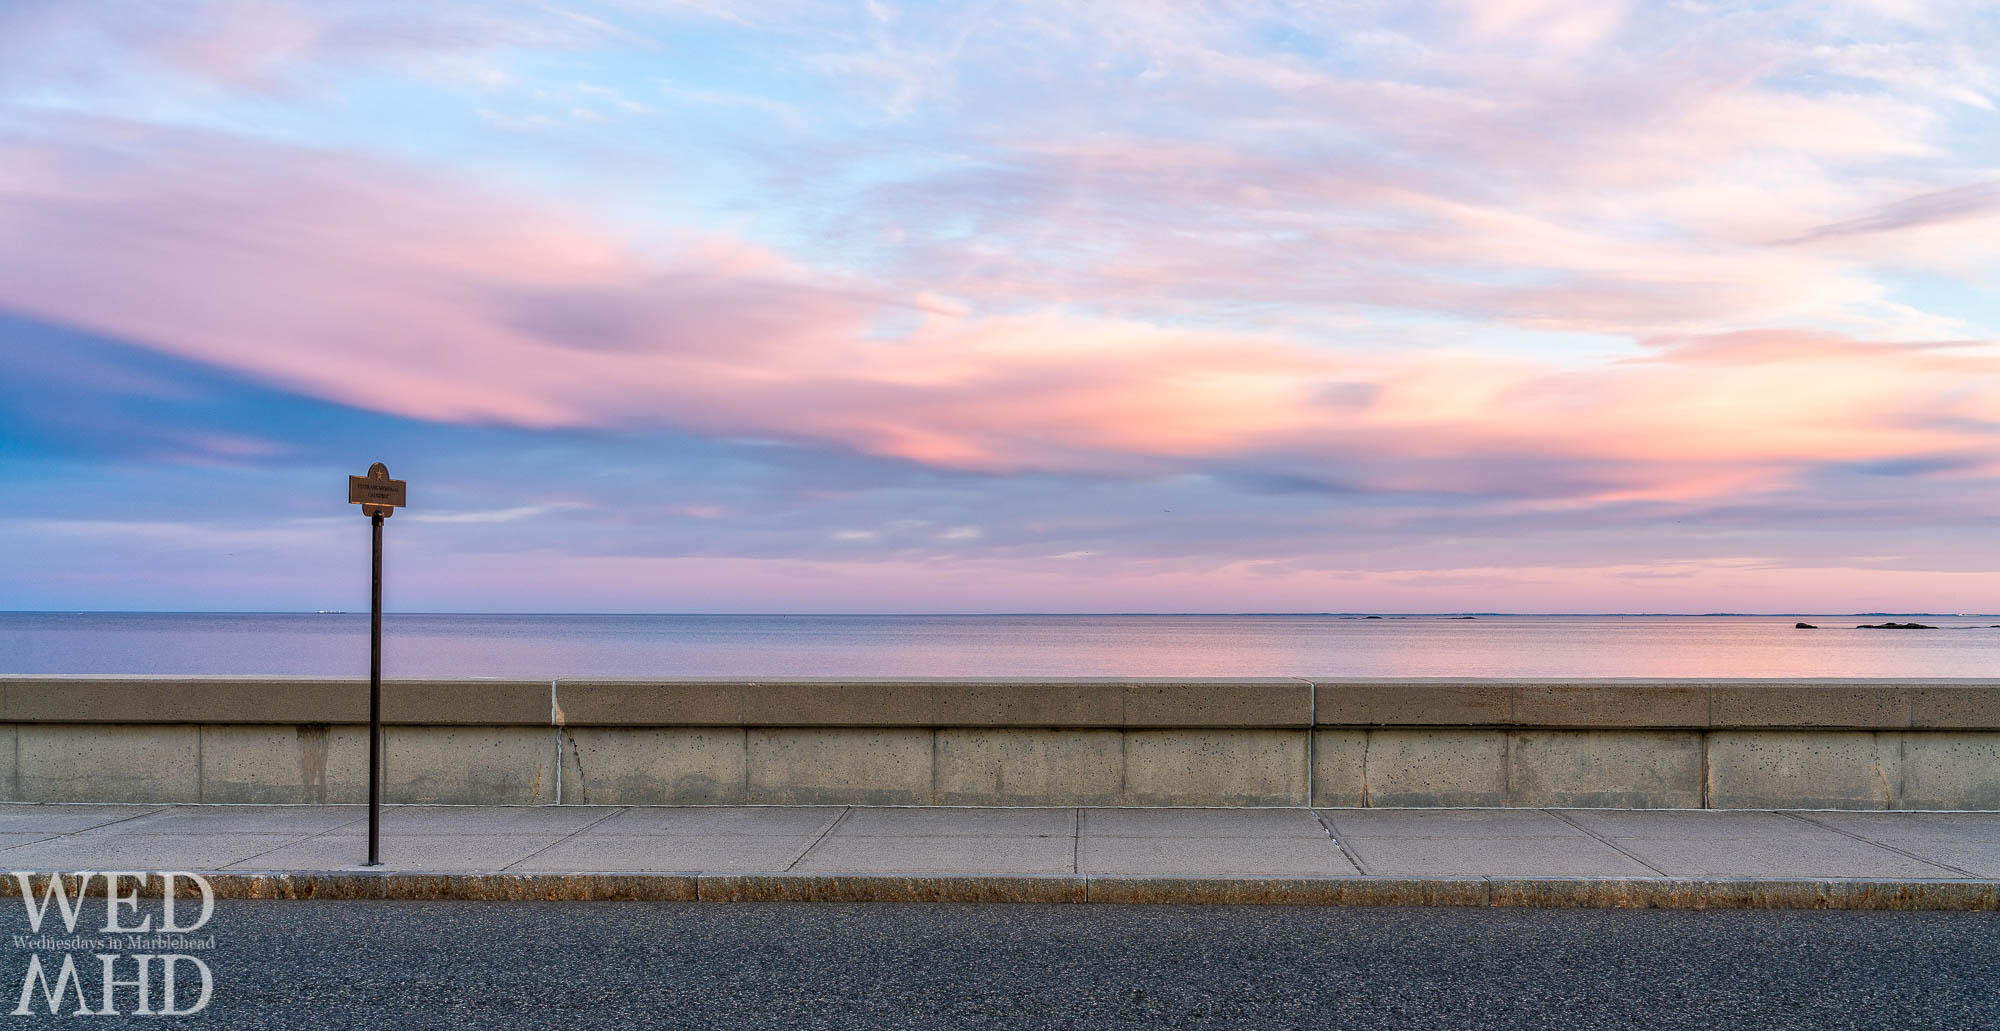 The Veterans Memorial Causeway is captured at sunset with a soft display of color reflecting on the calm water of the Atlantic ocean